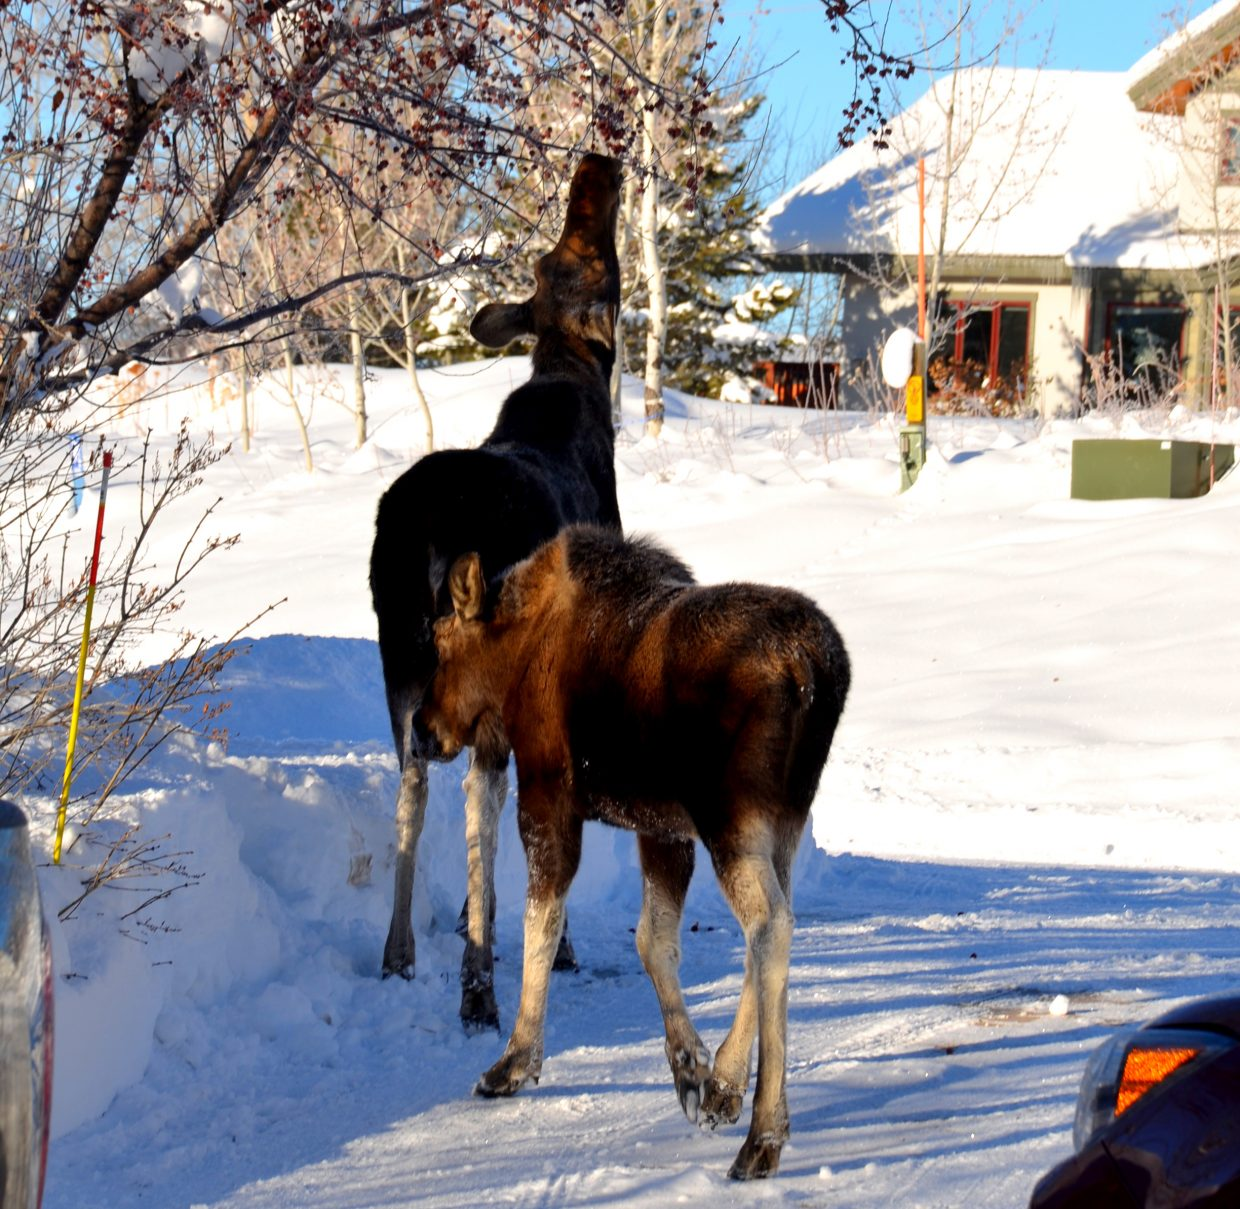 These two moose were on our front porch in Steamboat this morning, looking inside as we started to open presents! Submitted by: Shannon Lukens